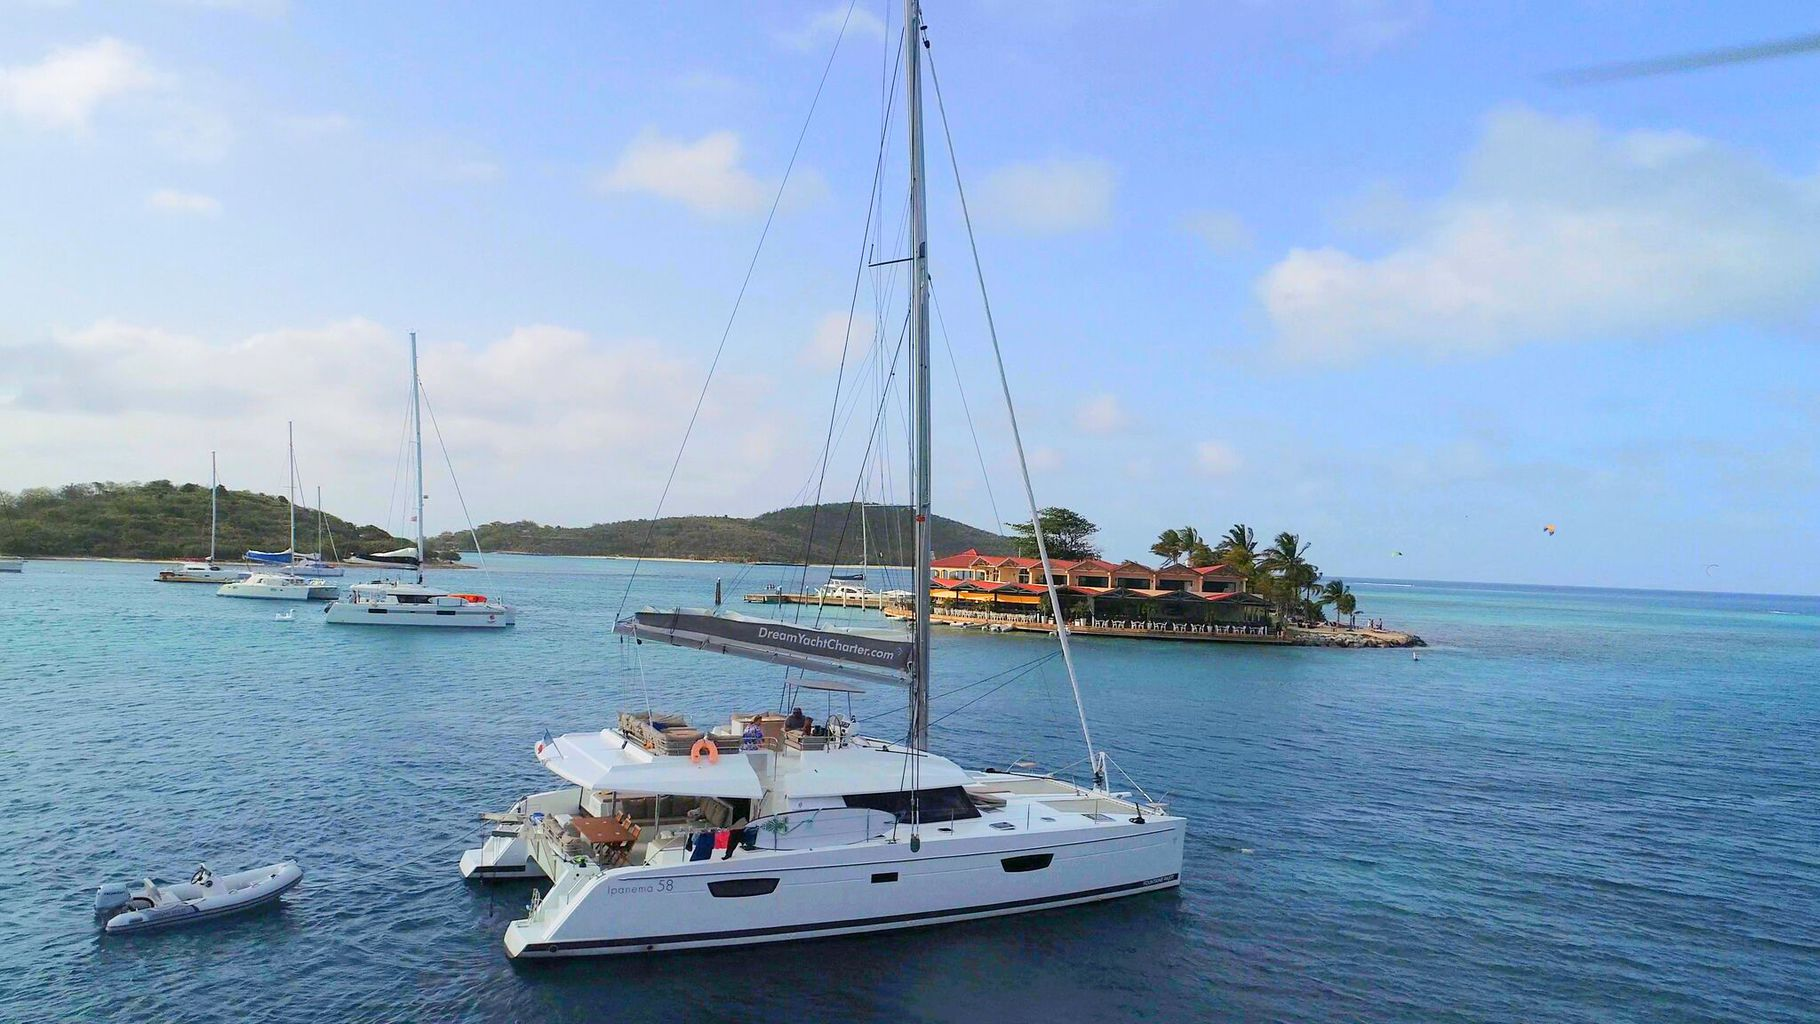 Meet the New Crewed Luxury Yachts in Our Caribbean Fleet